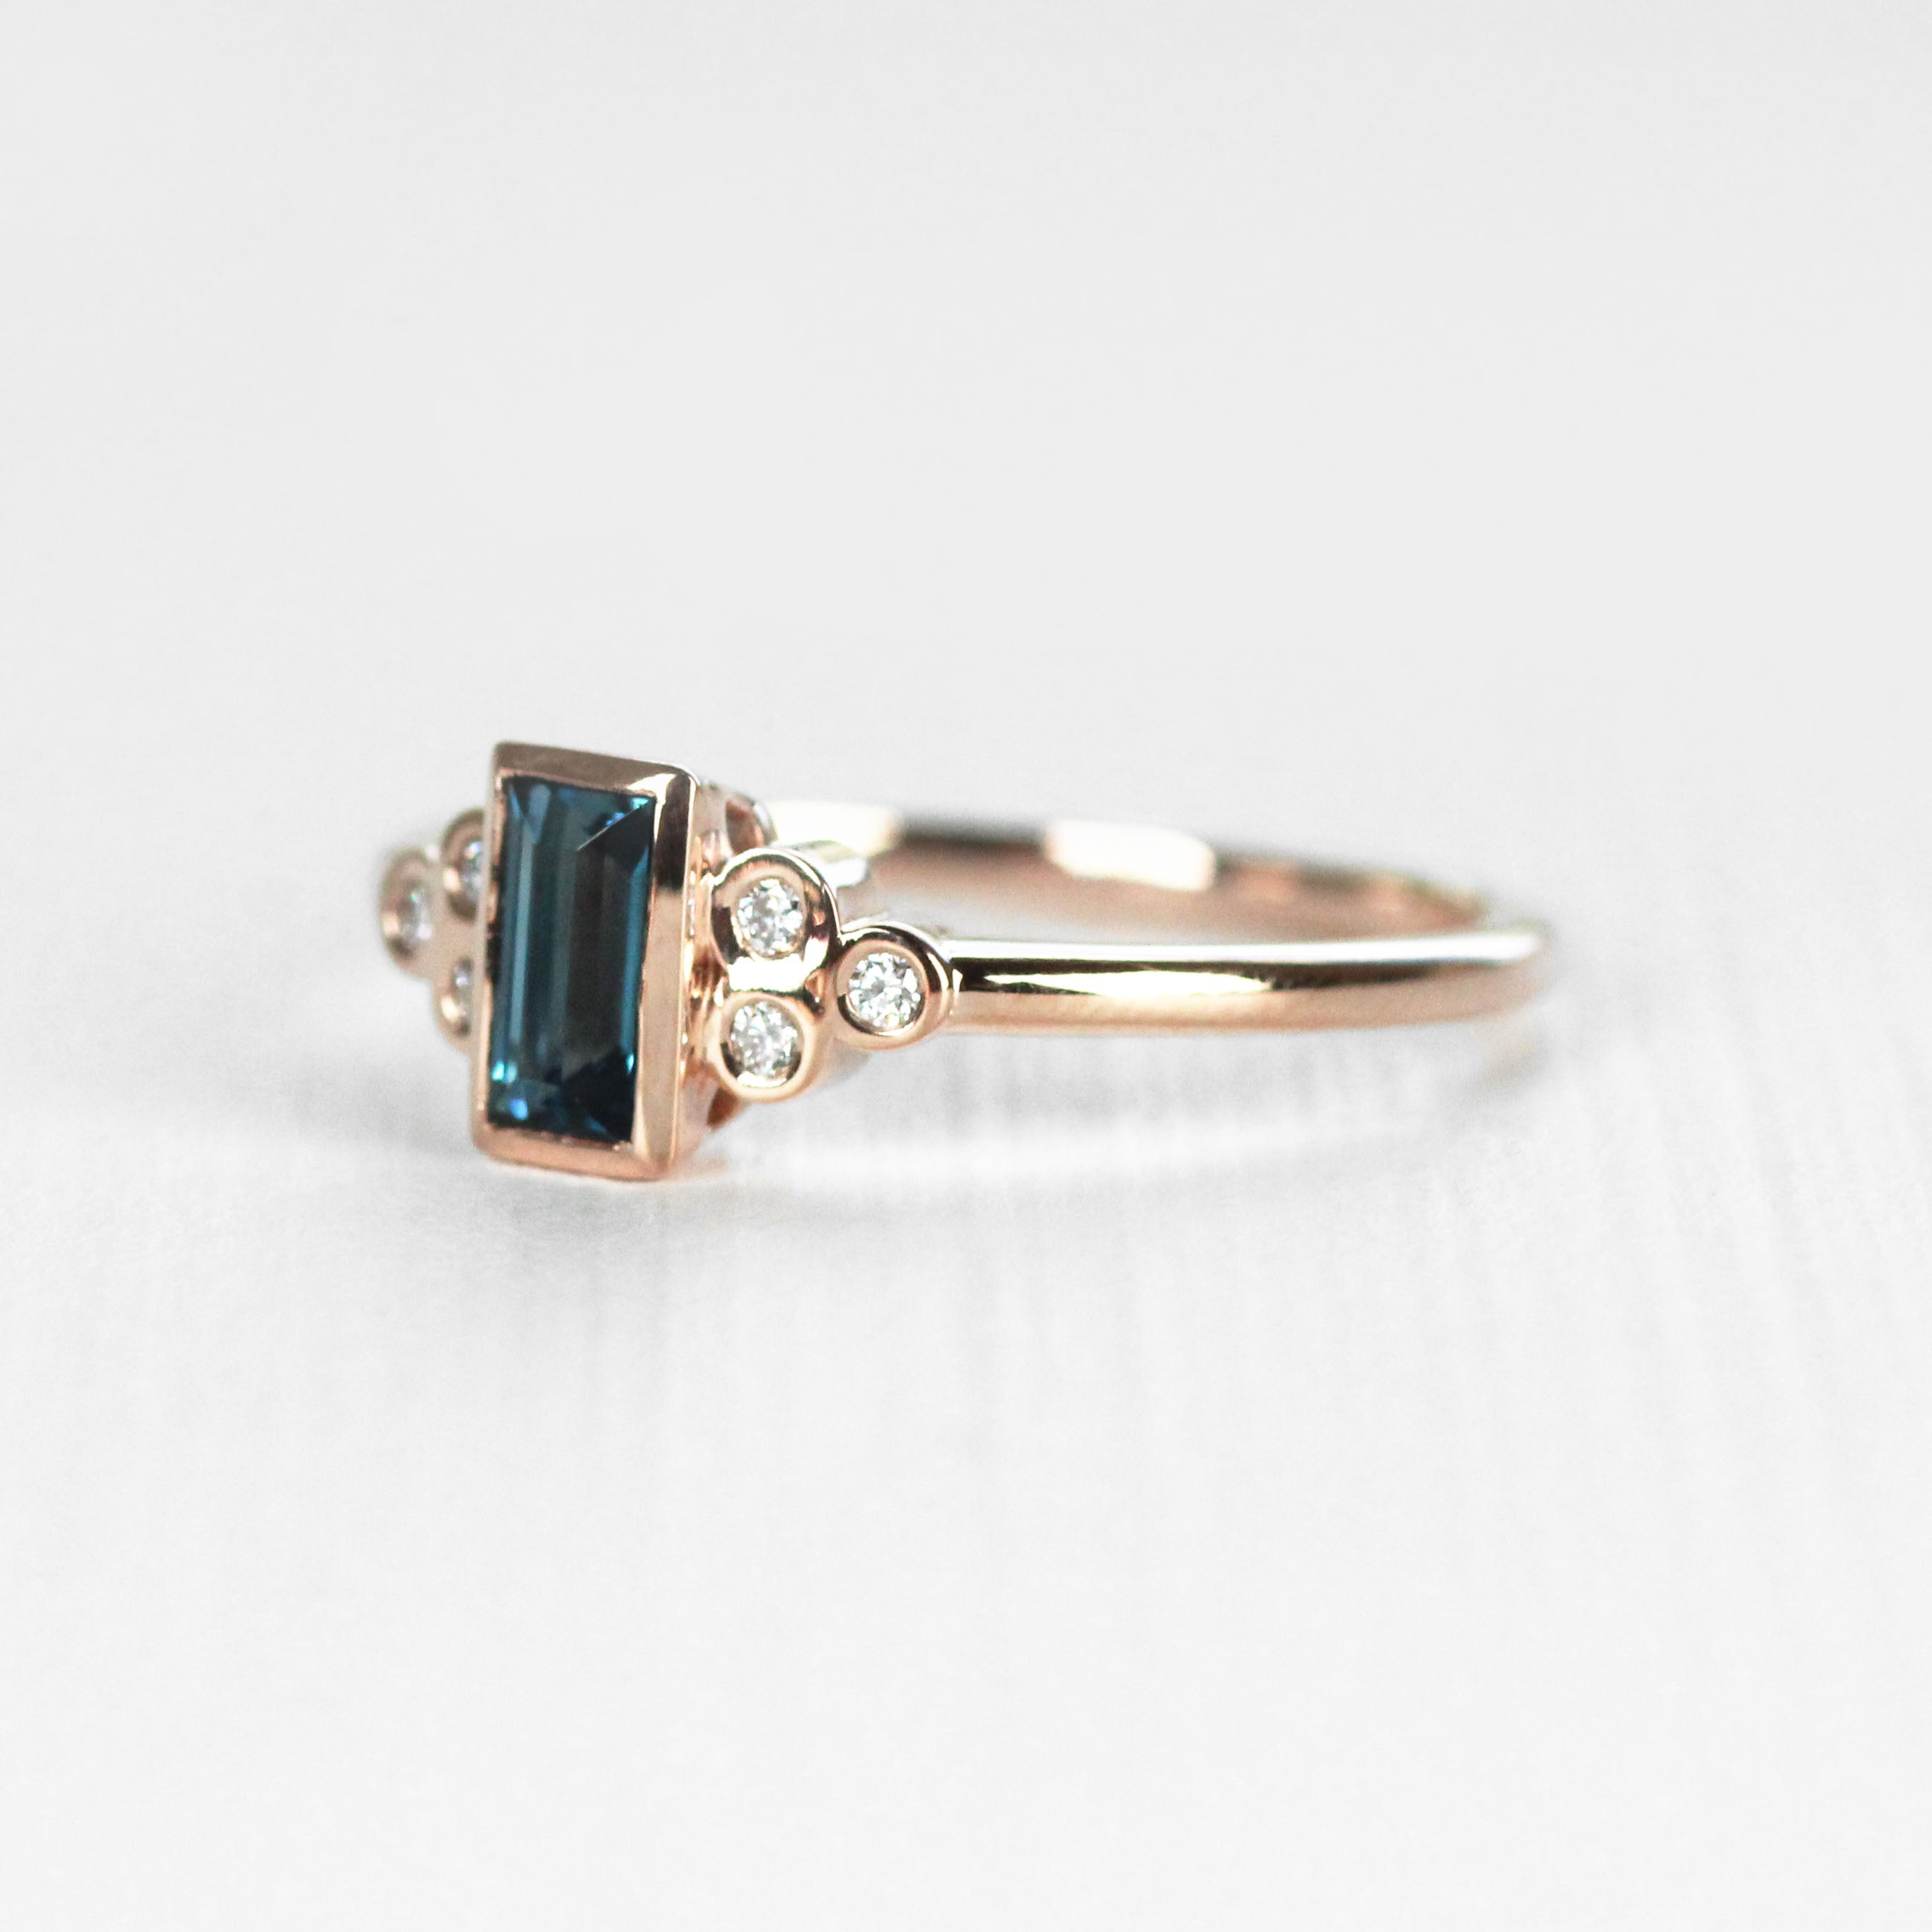 Sophia - London Blue Topaz in Rose Gold Ring - Made to order